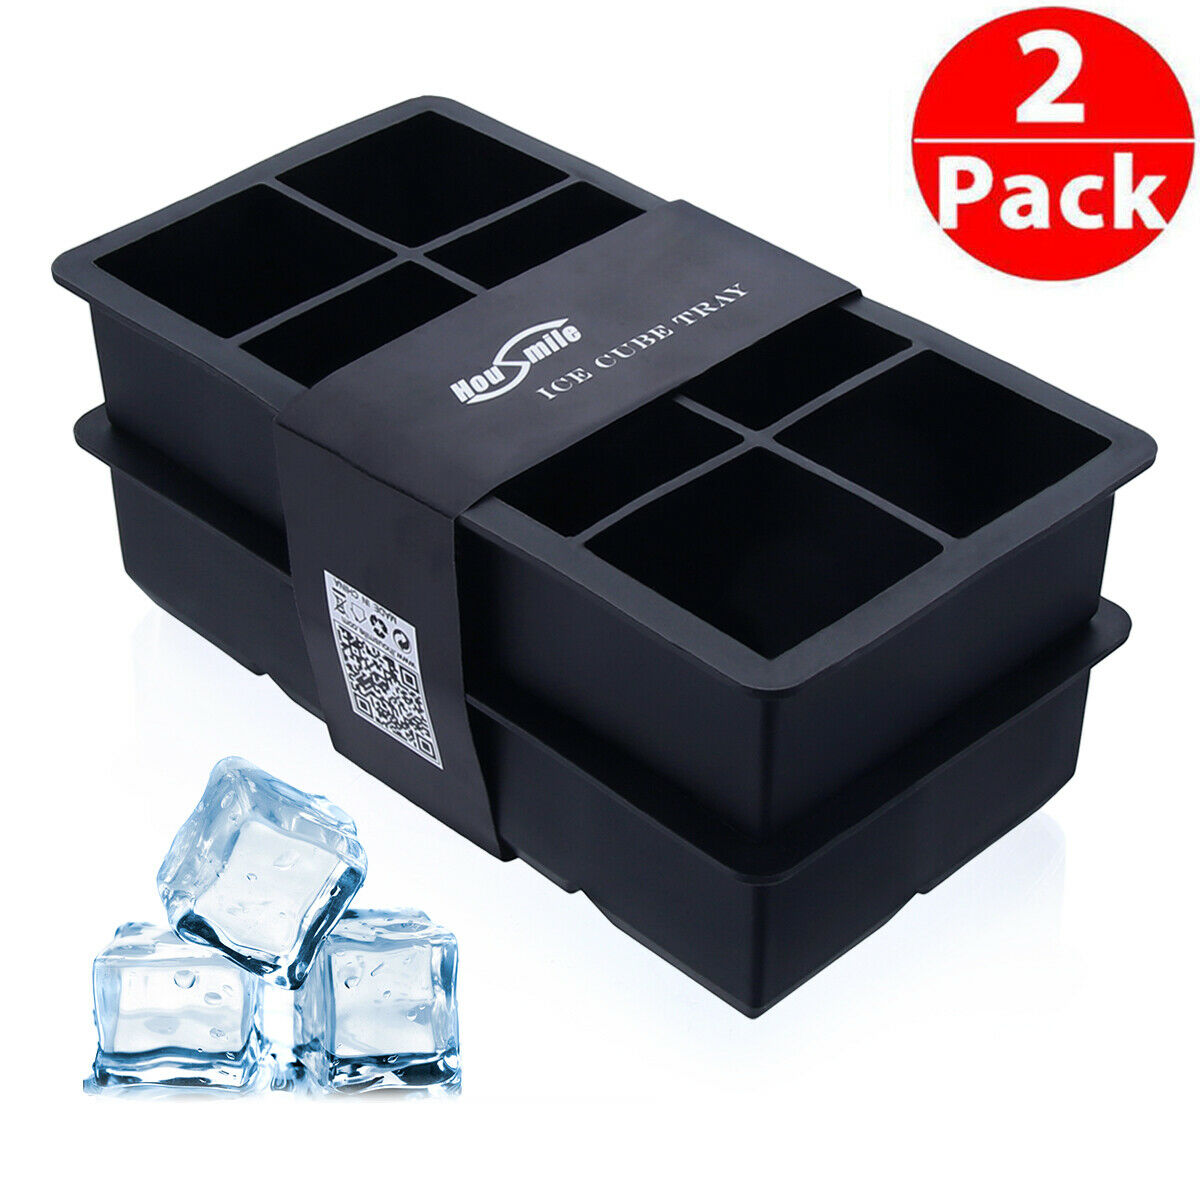 Housmile 8 Cavity Whiskey Big Ice Cube Tray Large Silicone Maker Mold Mould 2Pcs Housmile Does Not Apply